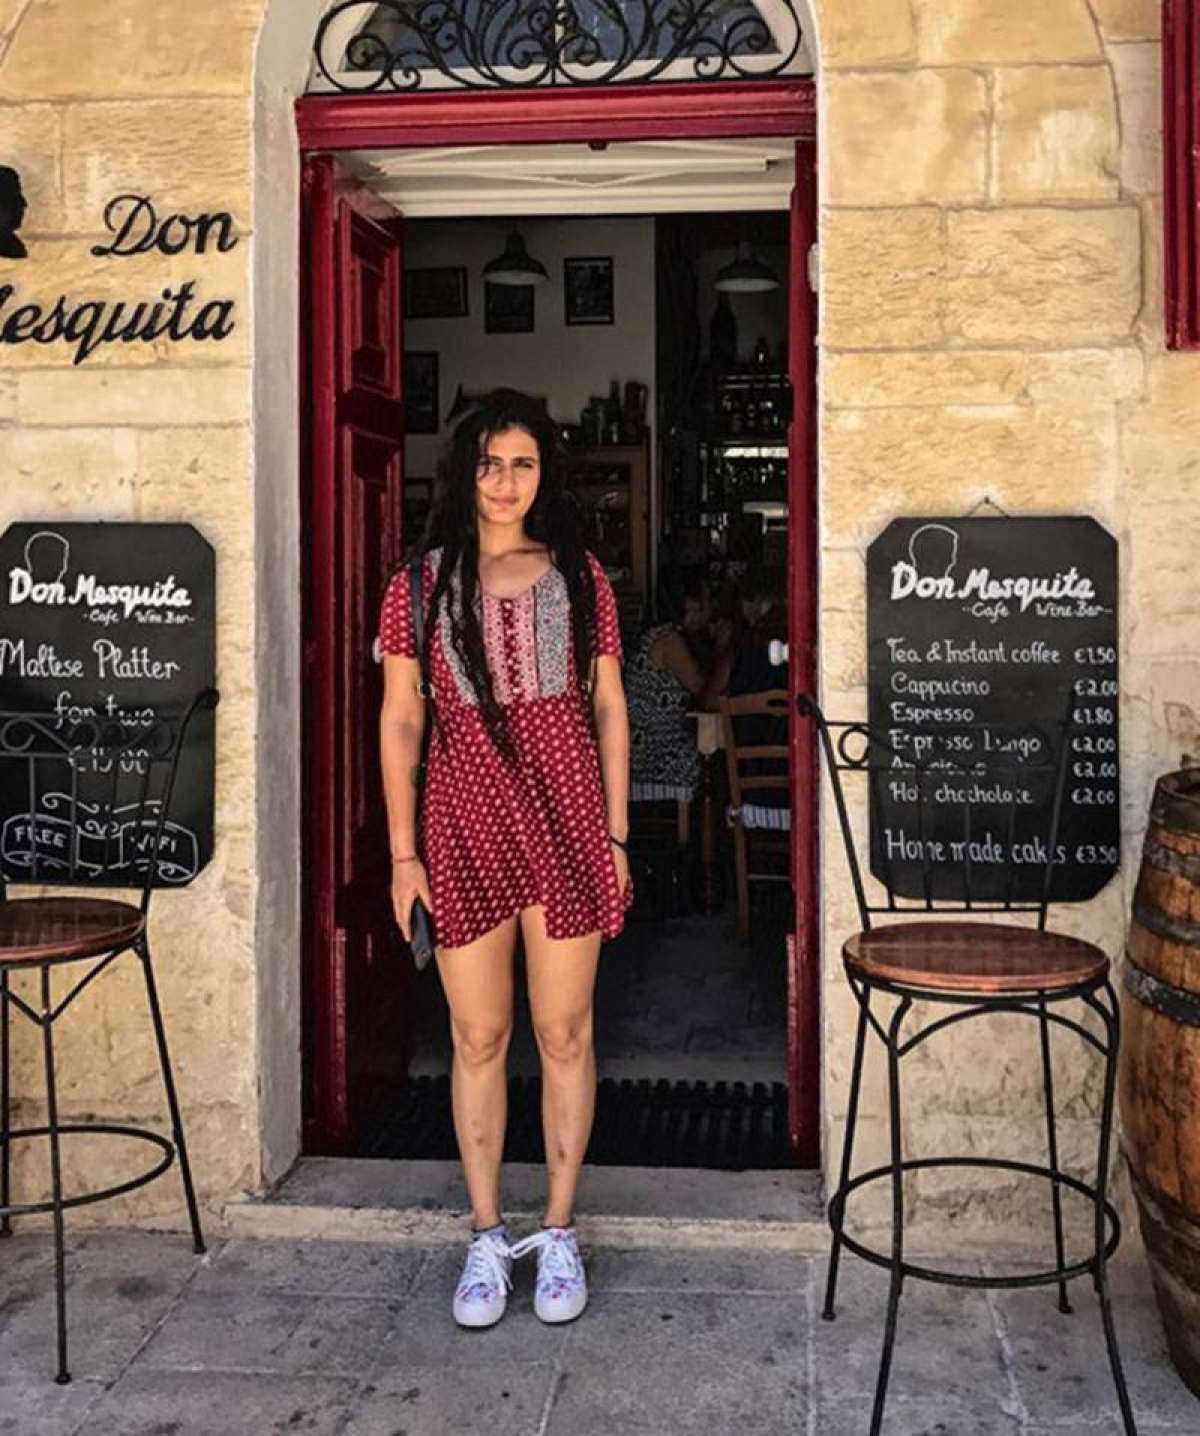 Pictures: Fatima Sana Shaikh is living the Malta life while filming Thugs of Hindostan